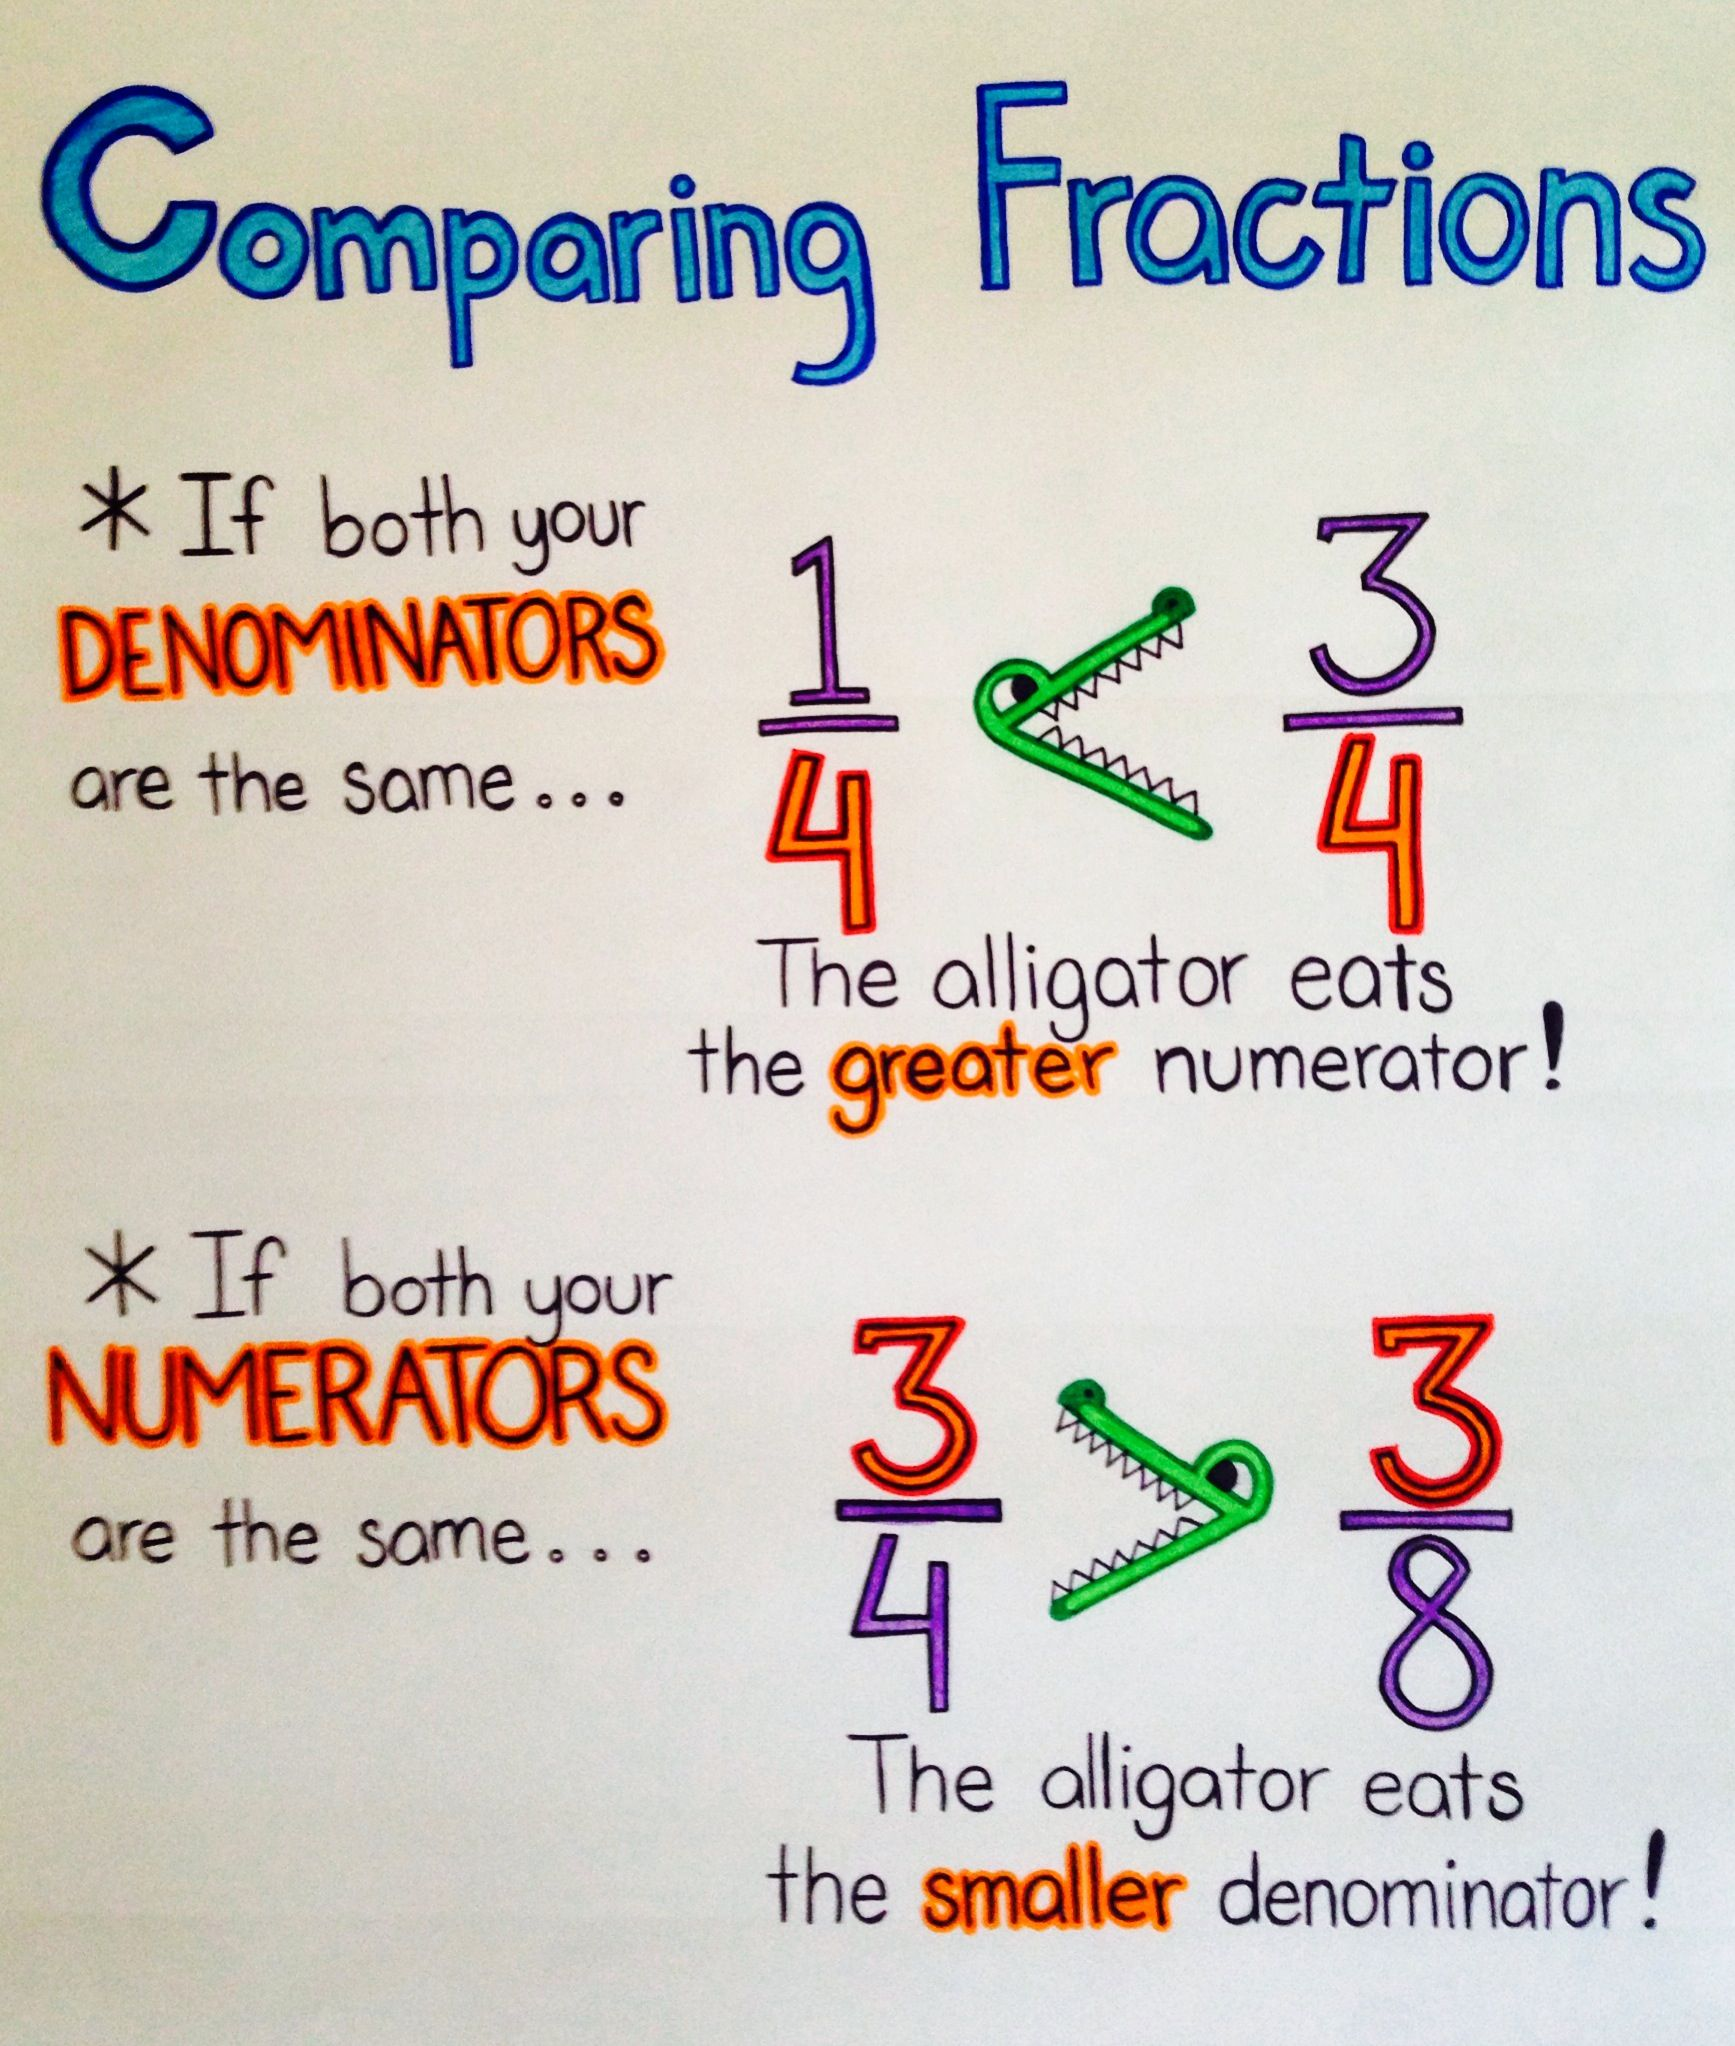 comparing fractions anchor chart | fraction 5th grade | pinterest